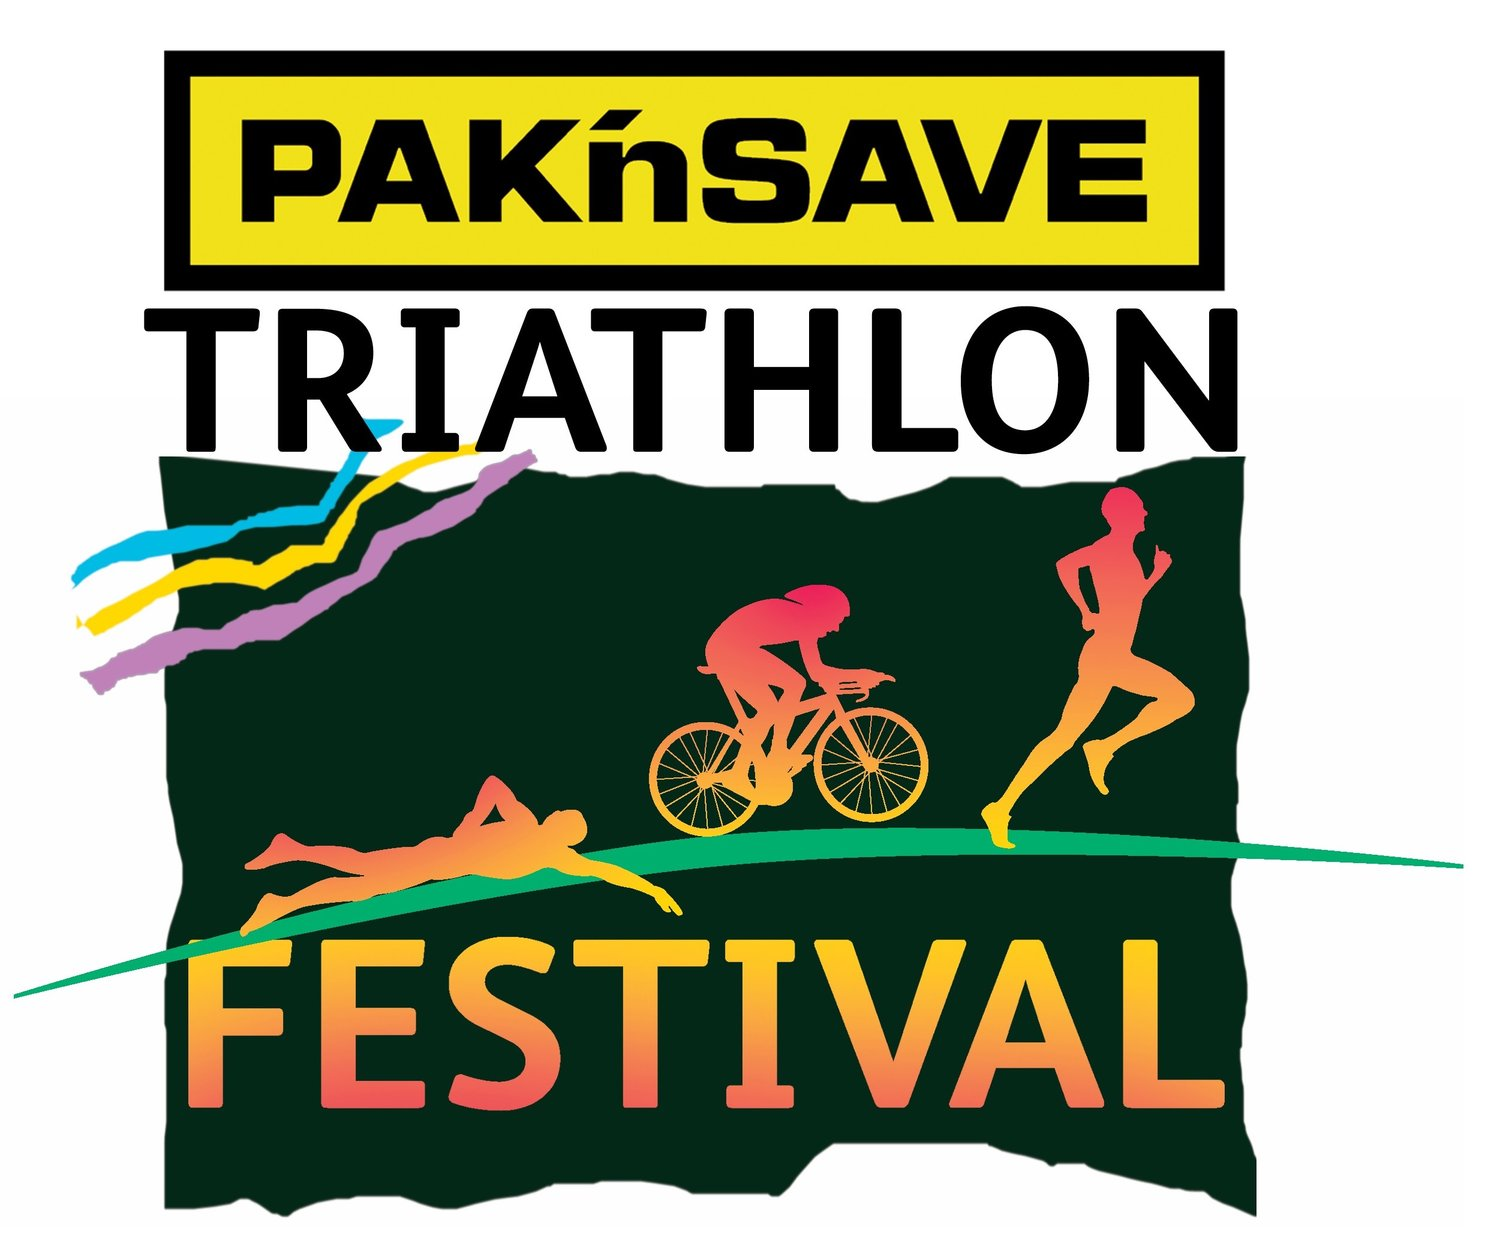 Pak n Save Triathlon Festival